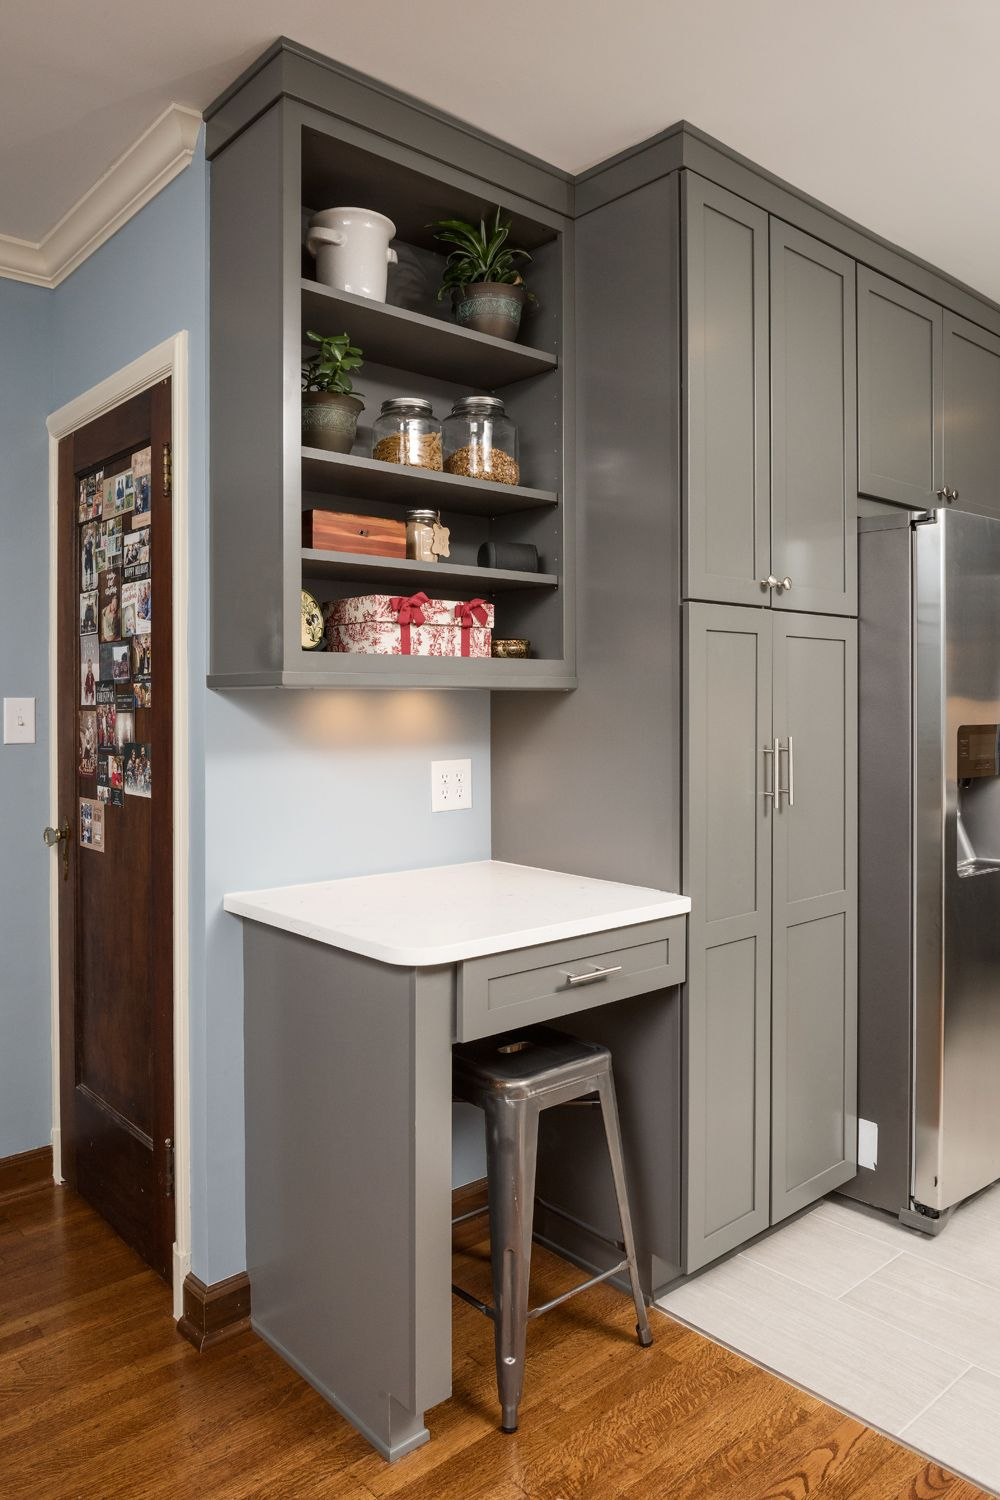 Meridian Kessler (Indianapolis) Kitchen Remodel (December 2015): Kitchen  Desk Area, Bar Stool Seating, Quartz Countertops, Gray Cabinetry, Stainless  Steel ...